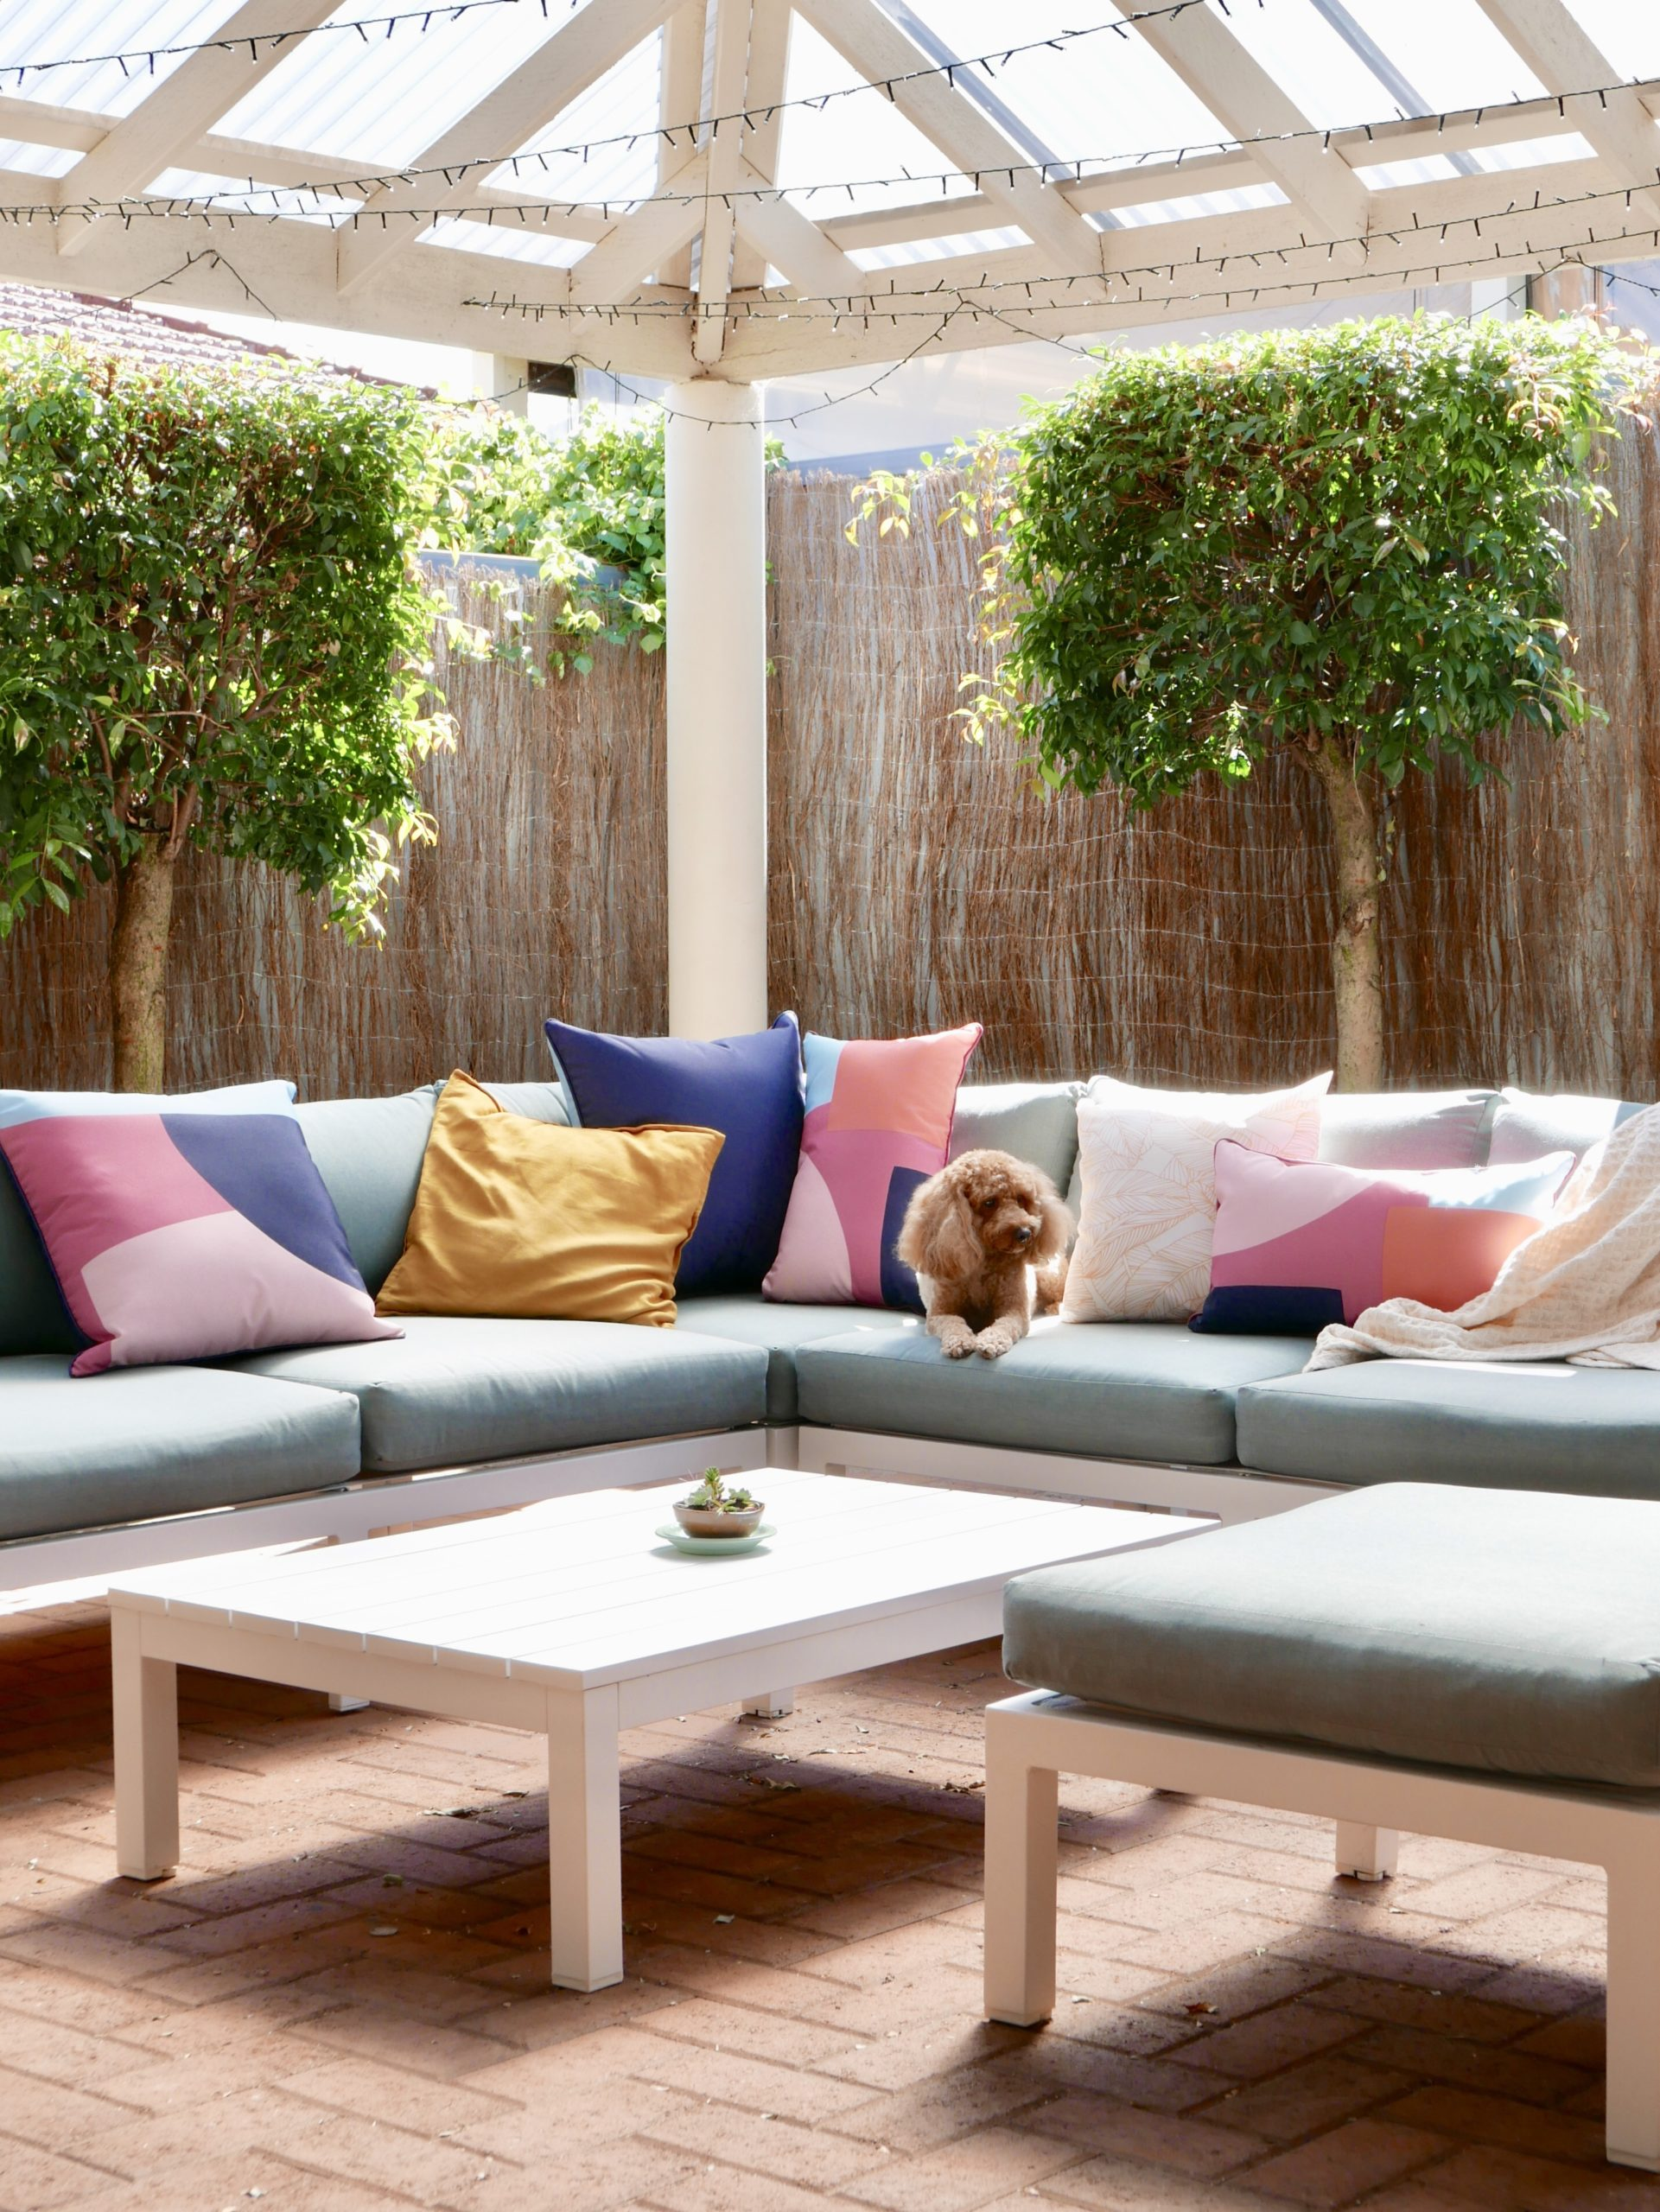 An outdoor setting in a courtyard. A dog is sitting on the couch.